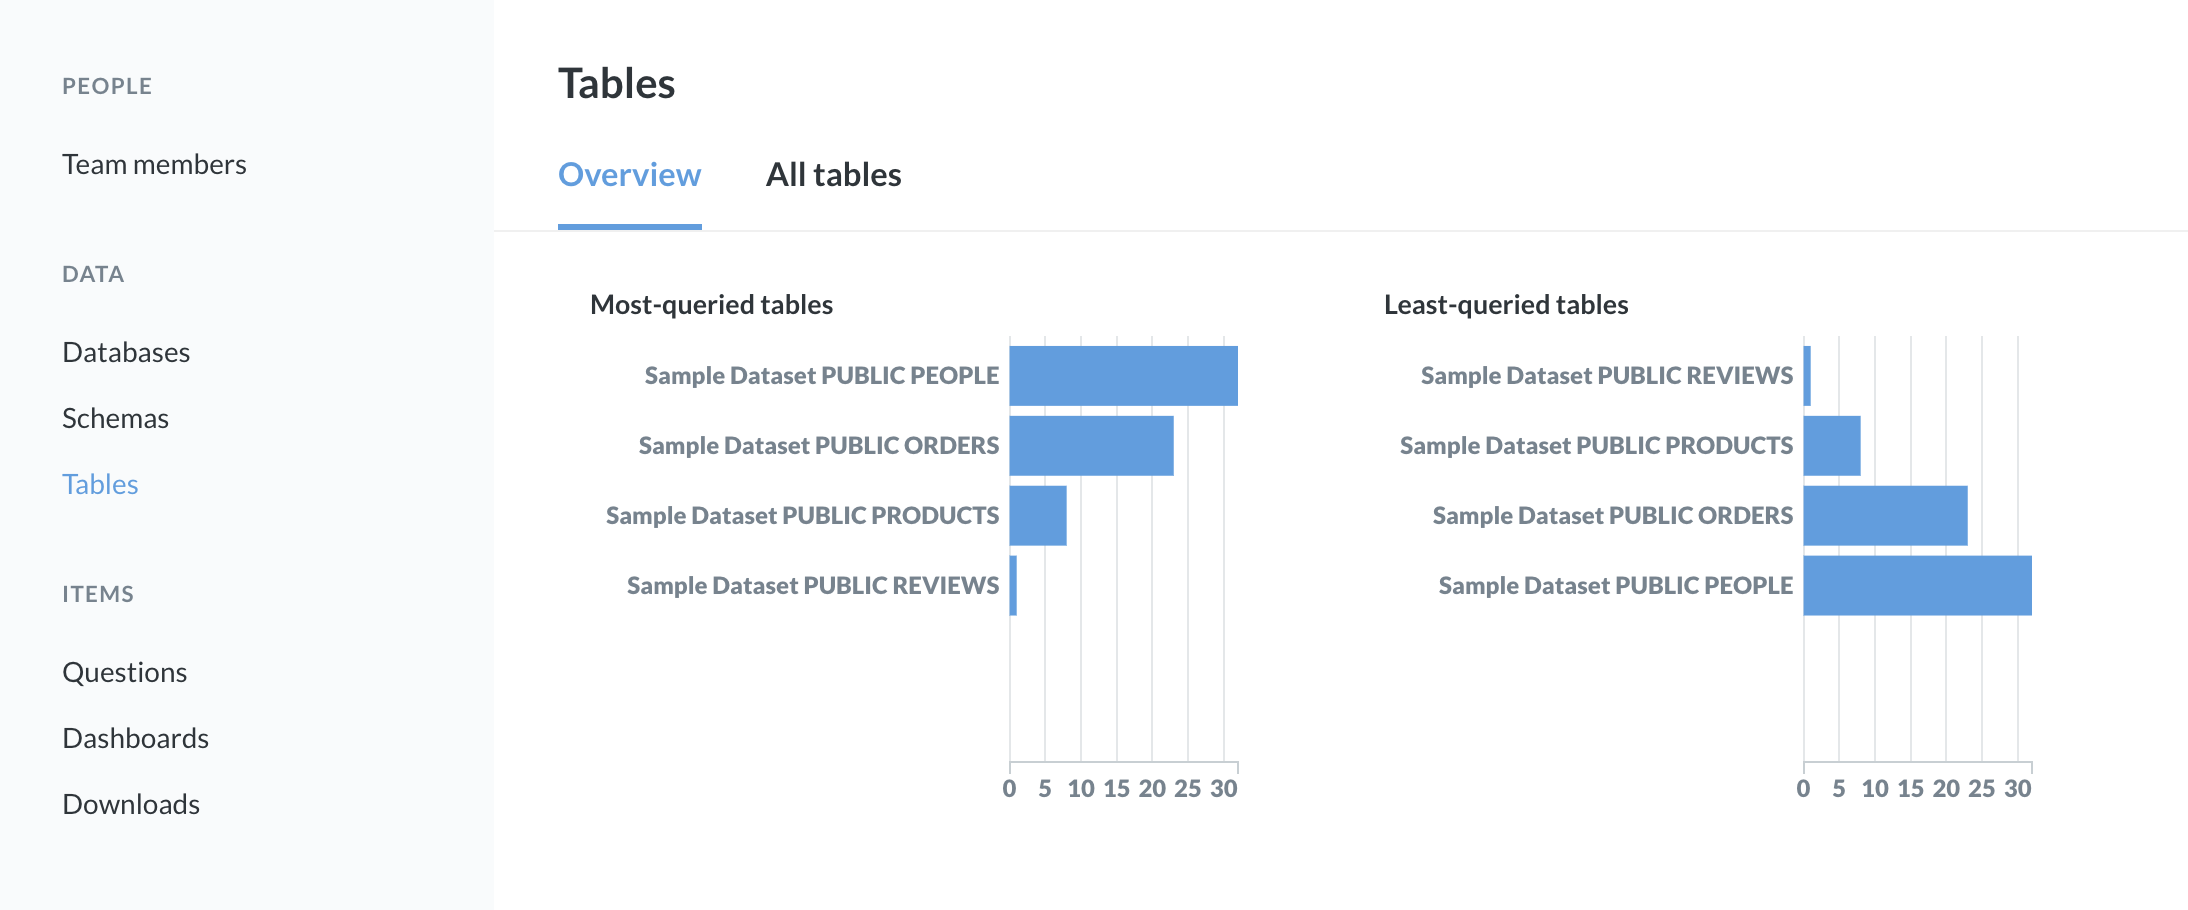 <em>Fig. 2.</em> The tables overview page with the mouse hovering over the PUBLIC PEOPLE item in the bar chart.